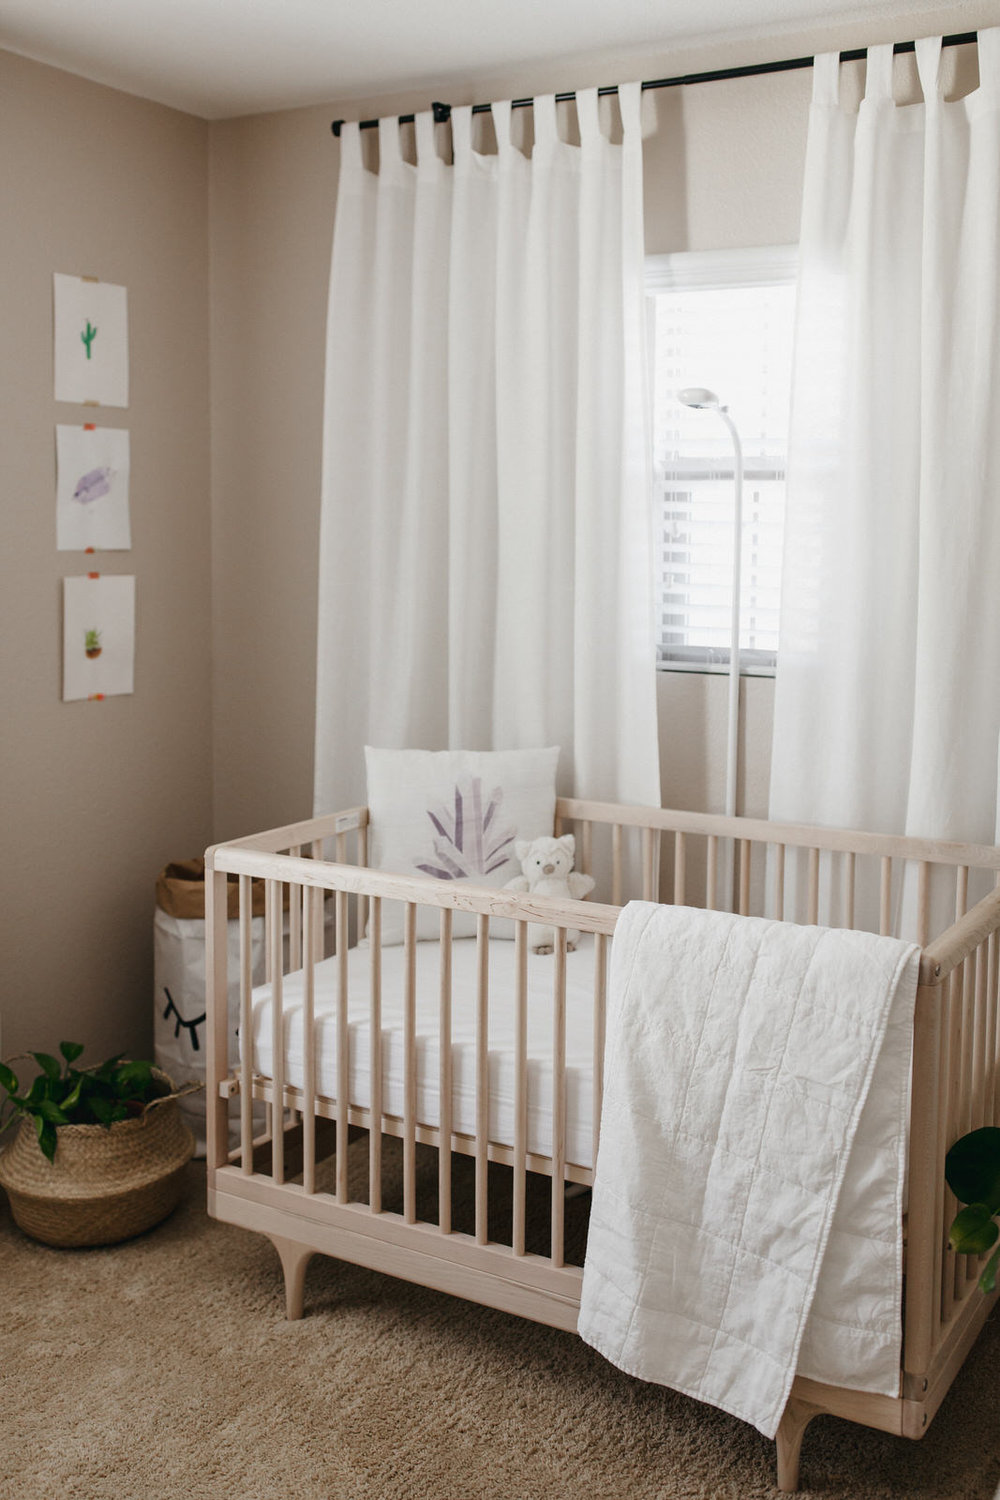 Chloé's Nursery - Baby's Room - V1 (38 of 48).jpg